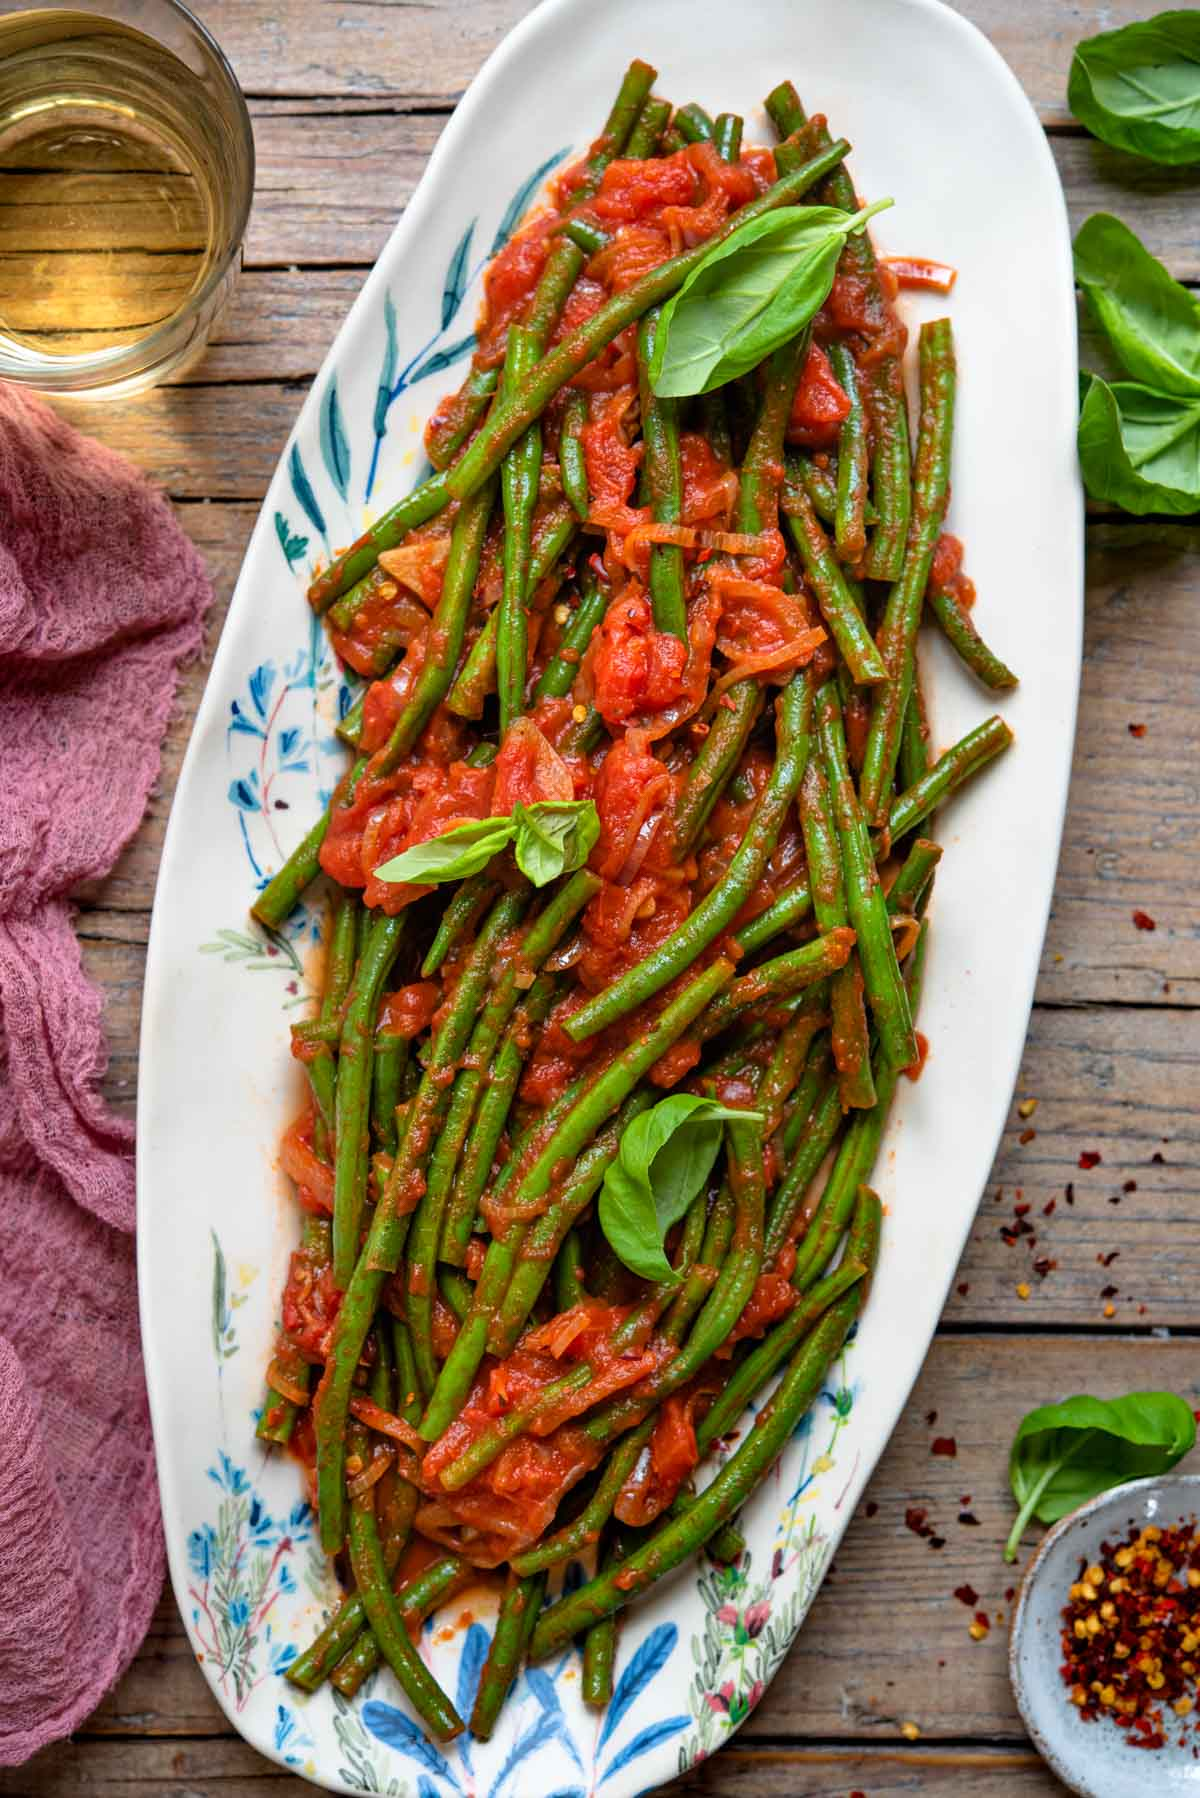 An overhead shot of Italian green beans tossed in a tomato sauce on an oval plate